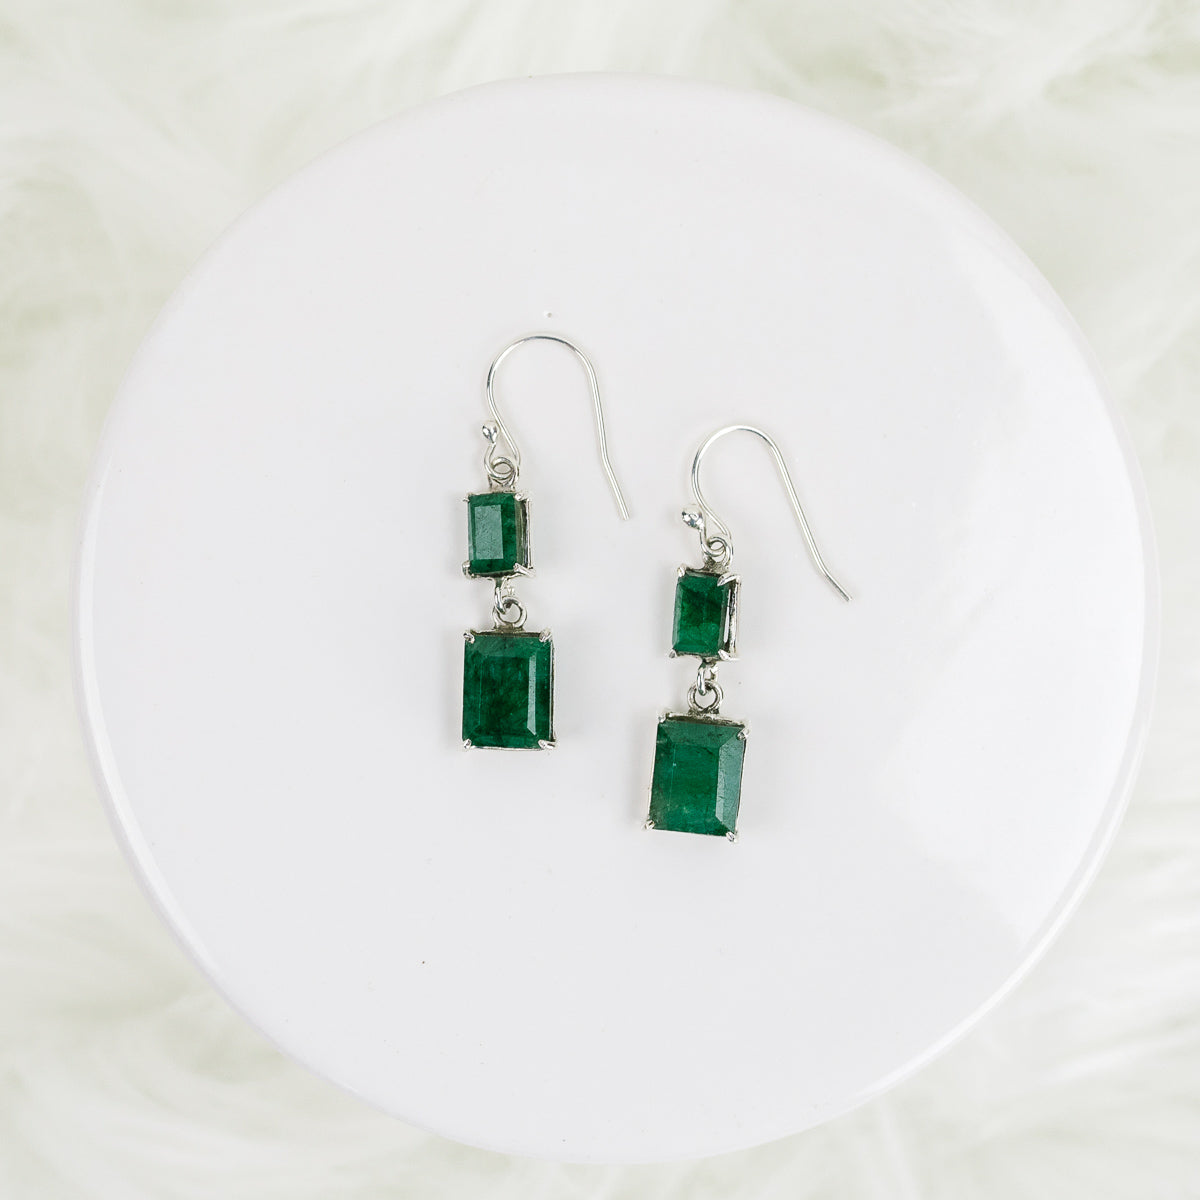 Emerald Cut Statement Earrings